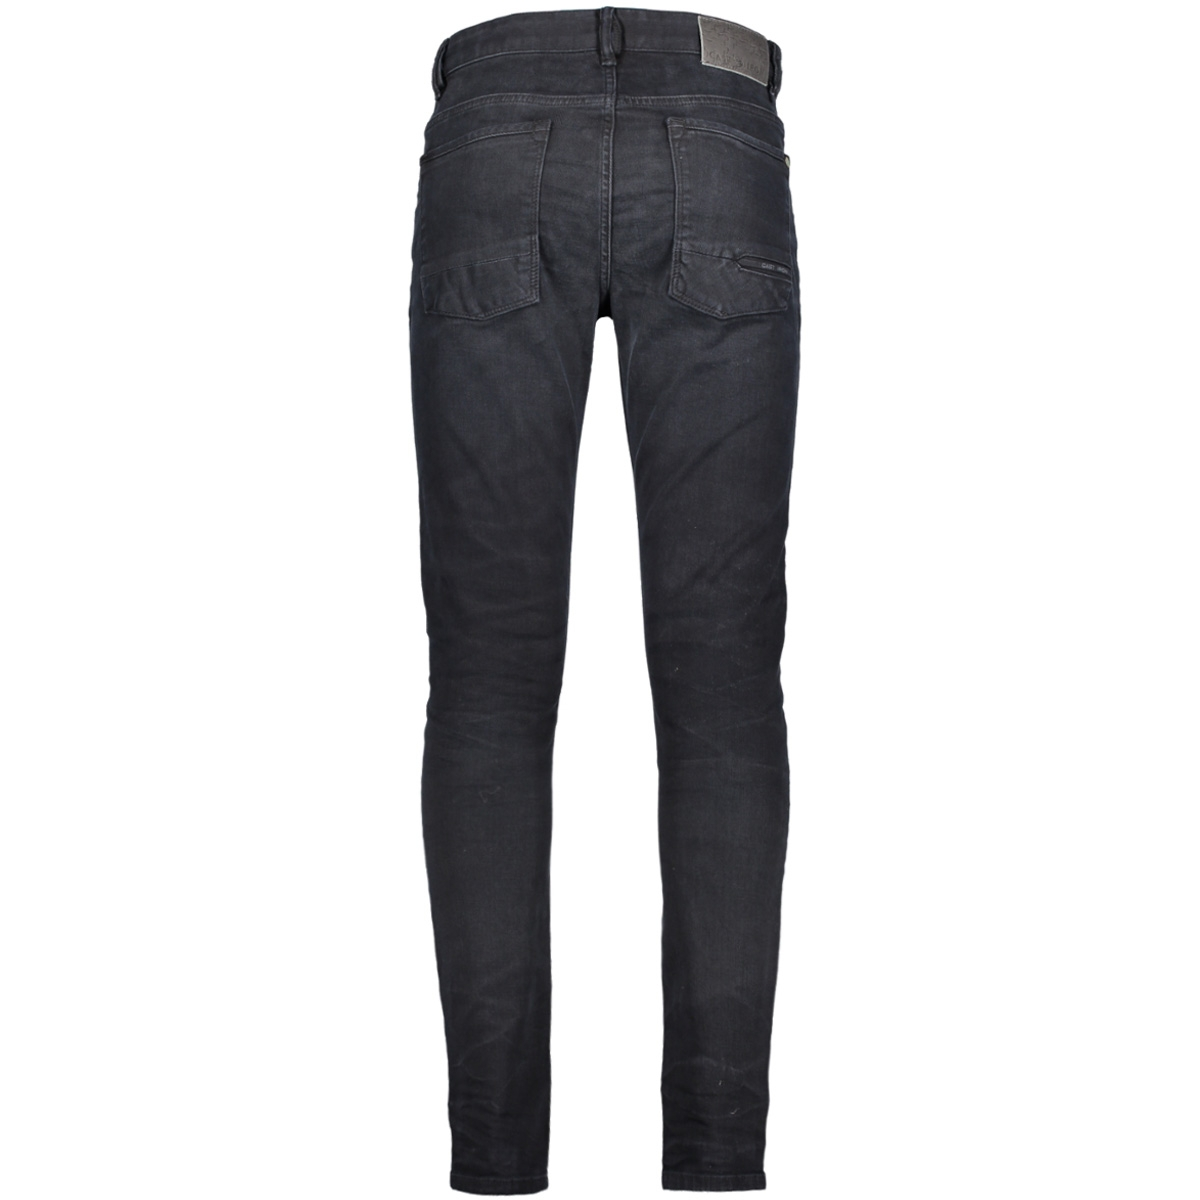 ctr175212-rsb cast iron jeans rsb